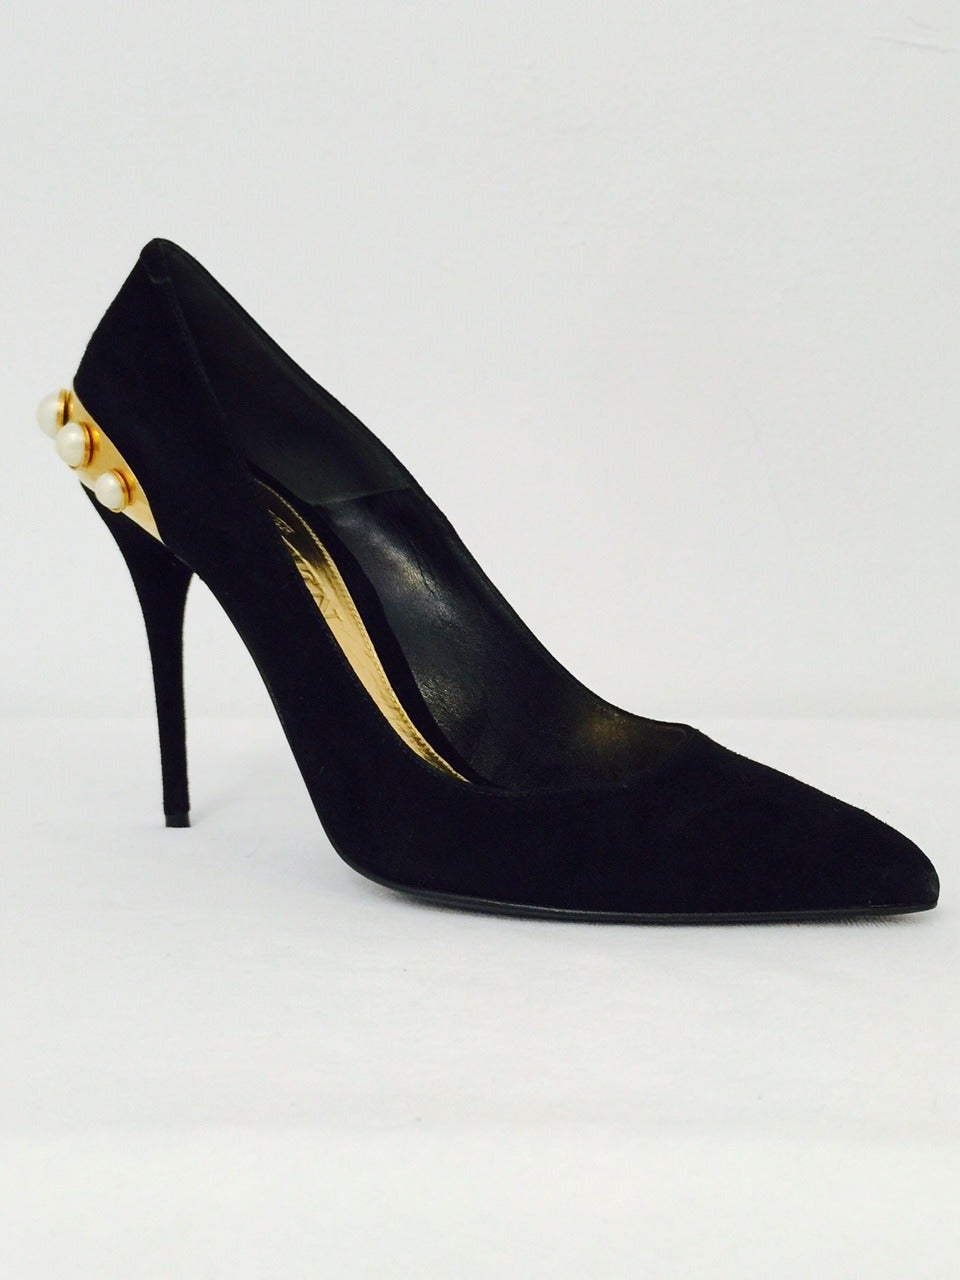 Awe-Inspiring Alexander McQueen Black Suede Evening Pumps with Pearls 4